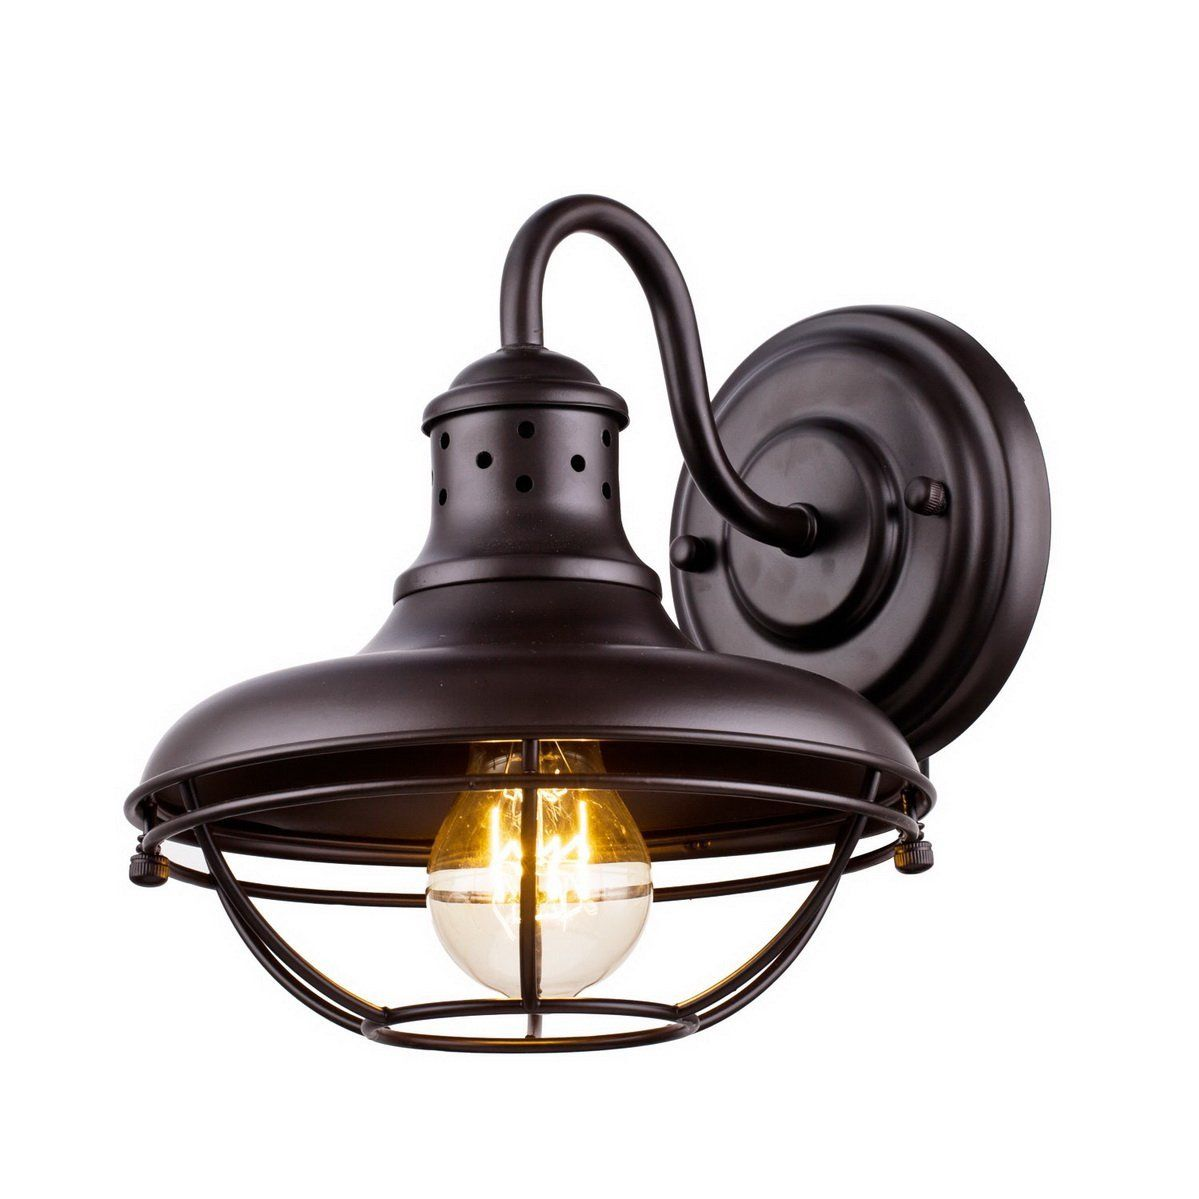 Dazhuan Vintage Metal Cage Outdoor Wall Light Exterior Wall Lantern Wall Sconce Lamp Oil Rubbed Bronze Cage Wall Lights Wall Lights Wall Light Fixtures Sconces